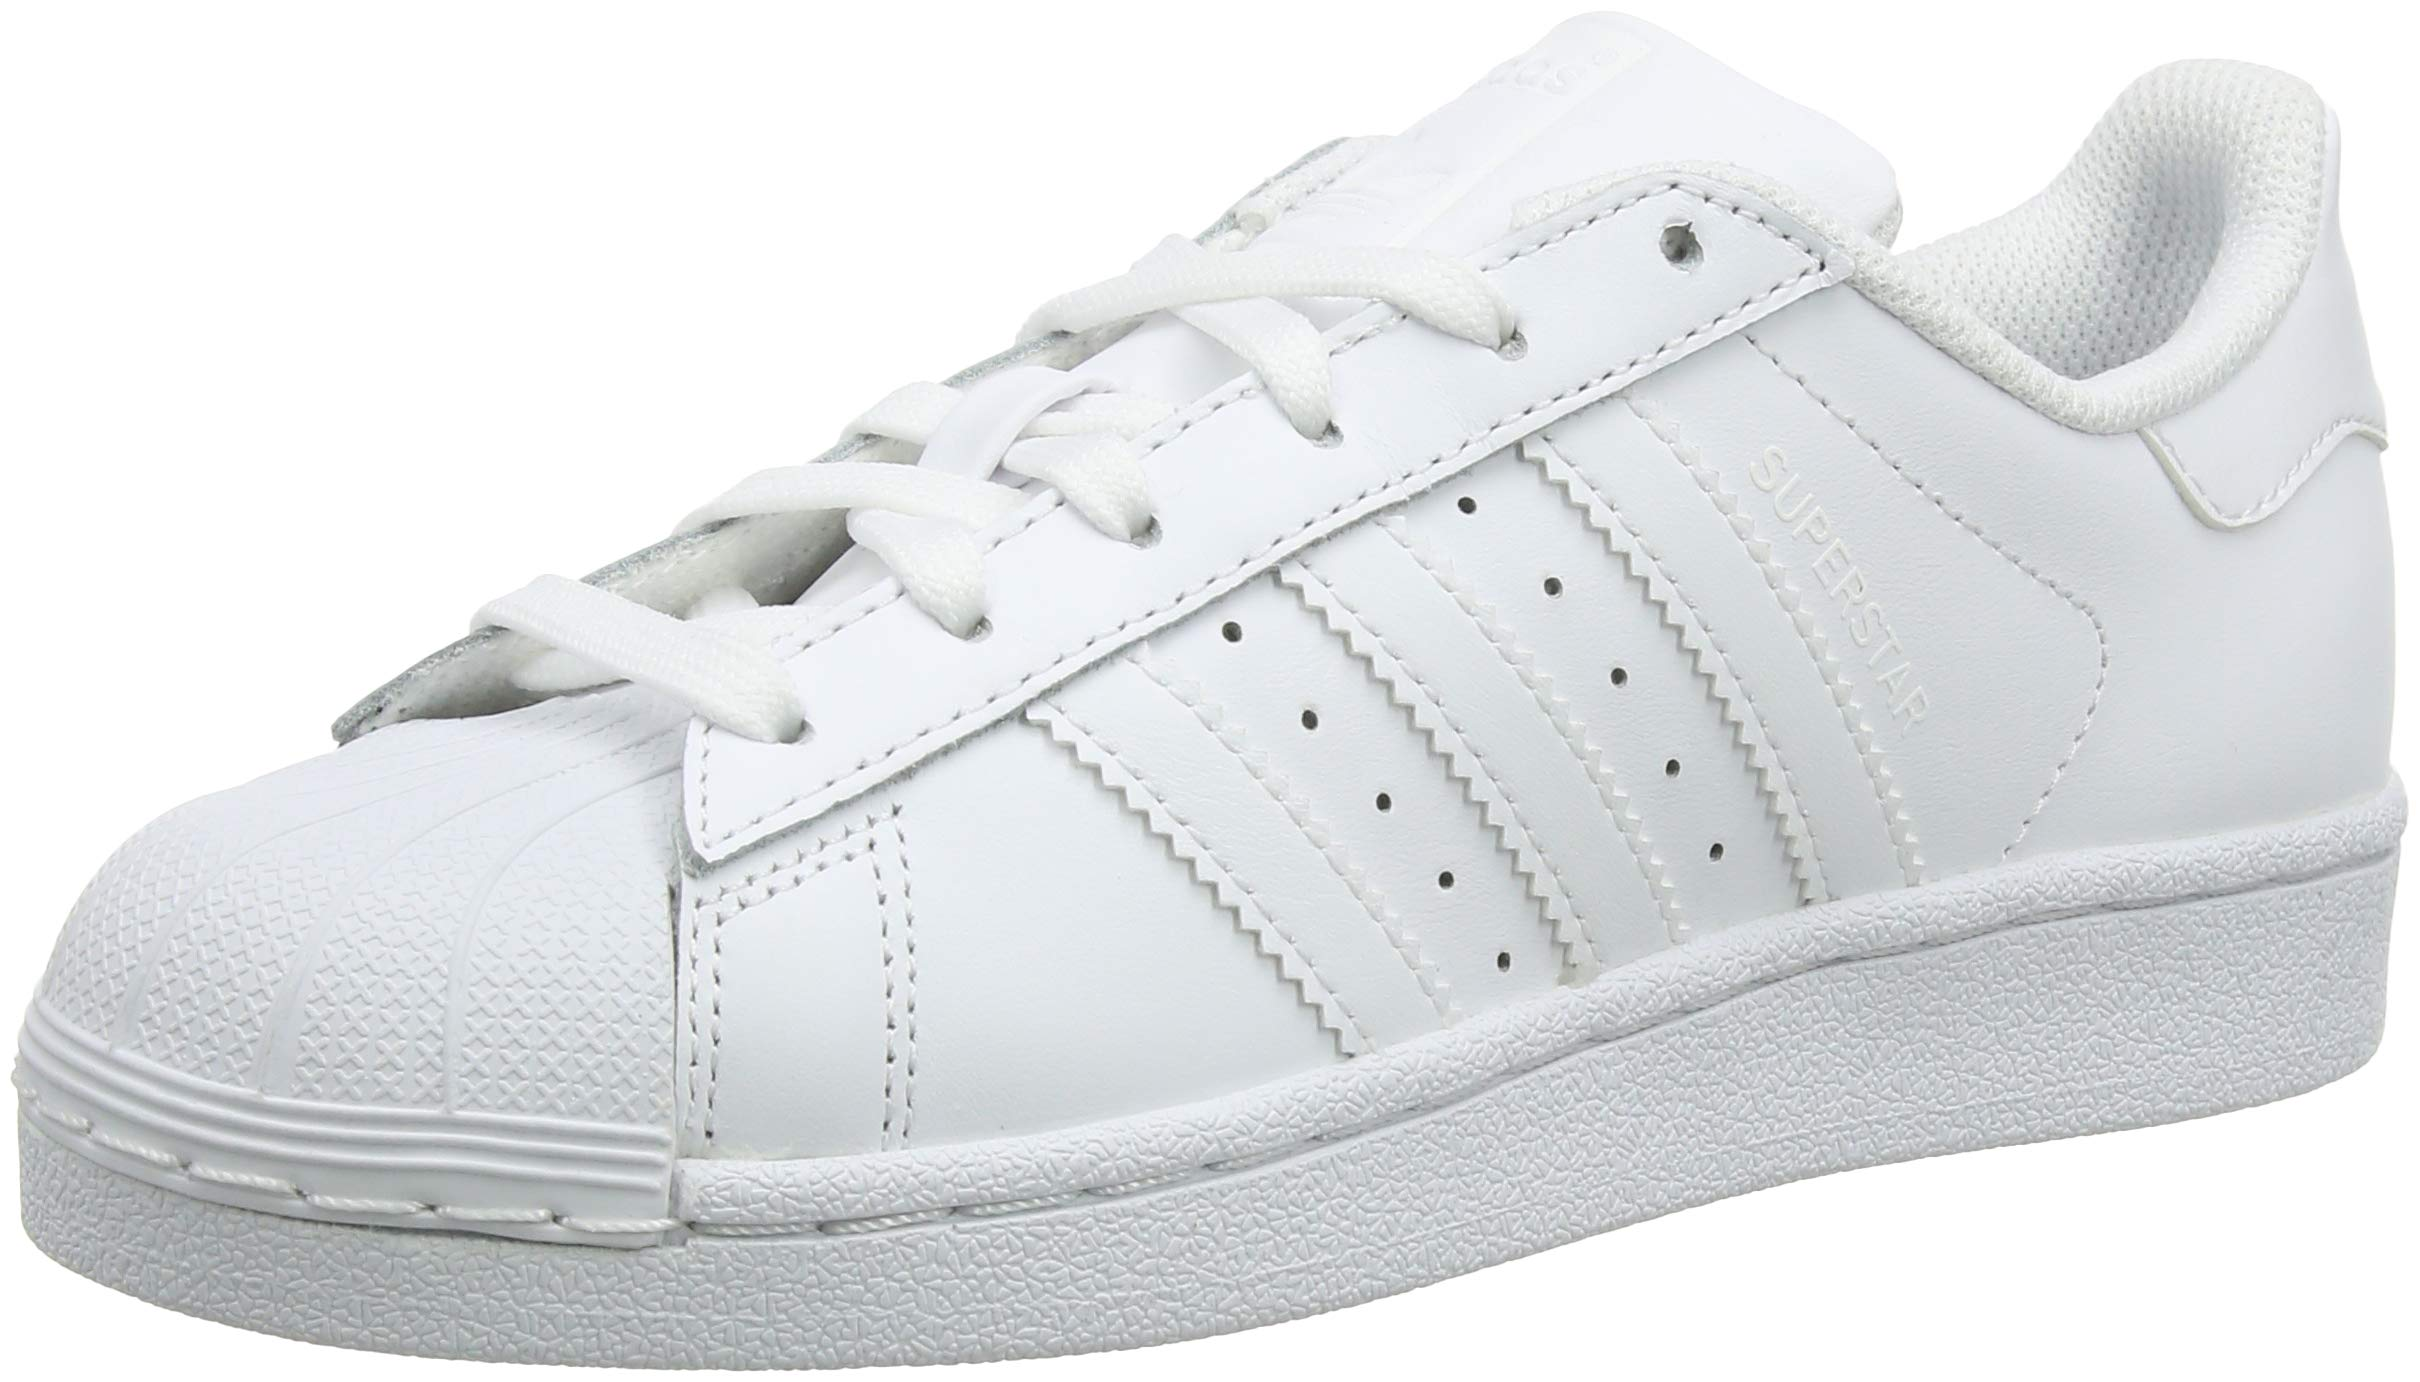 adidas Originals Superstar BB2872, Sneakers Unisex - Bambini 1 spesavip